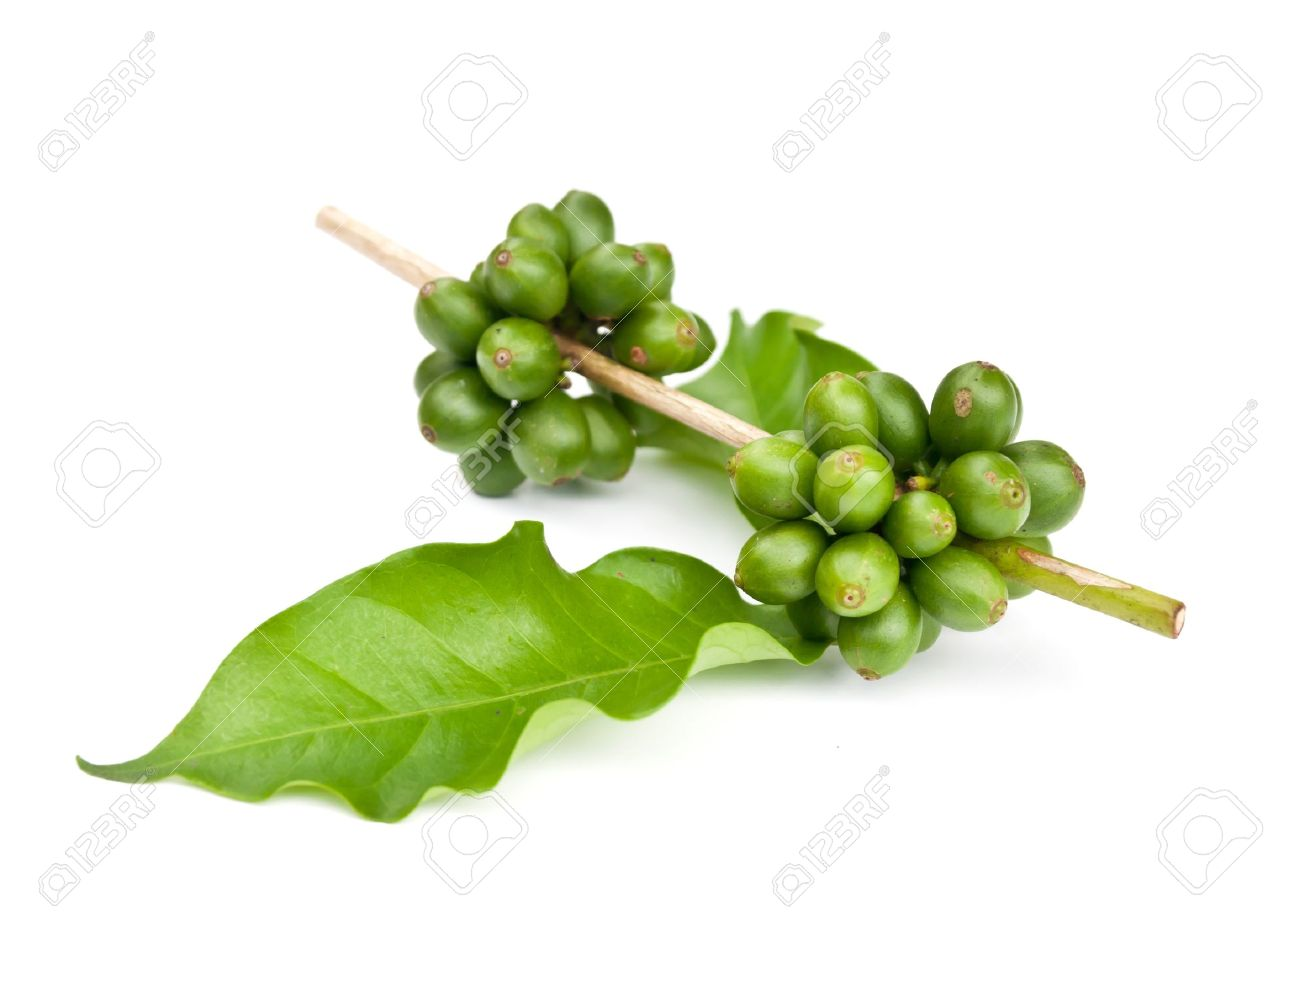 coffee beans and leaf on white background - 14395565